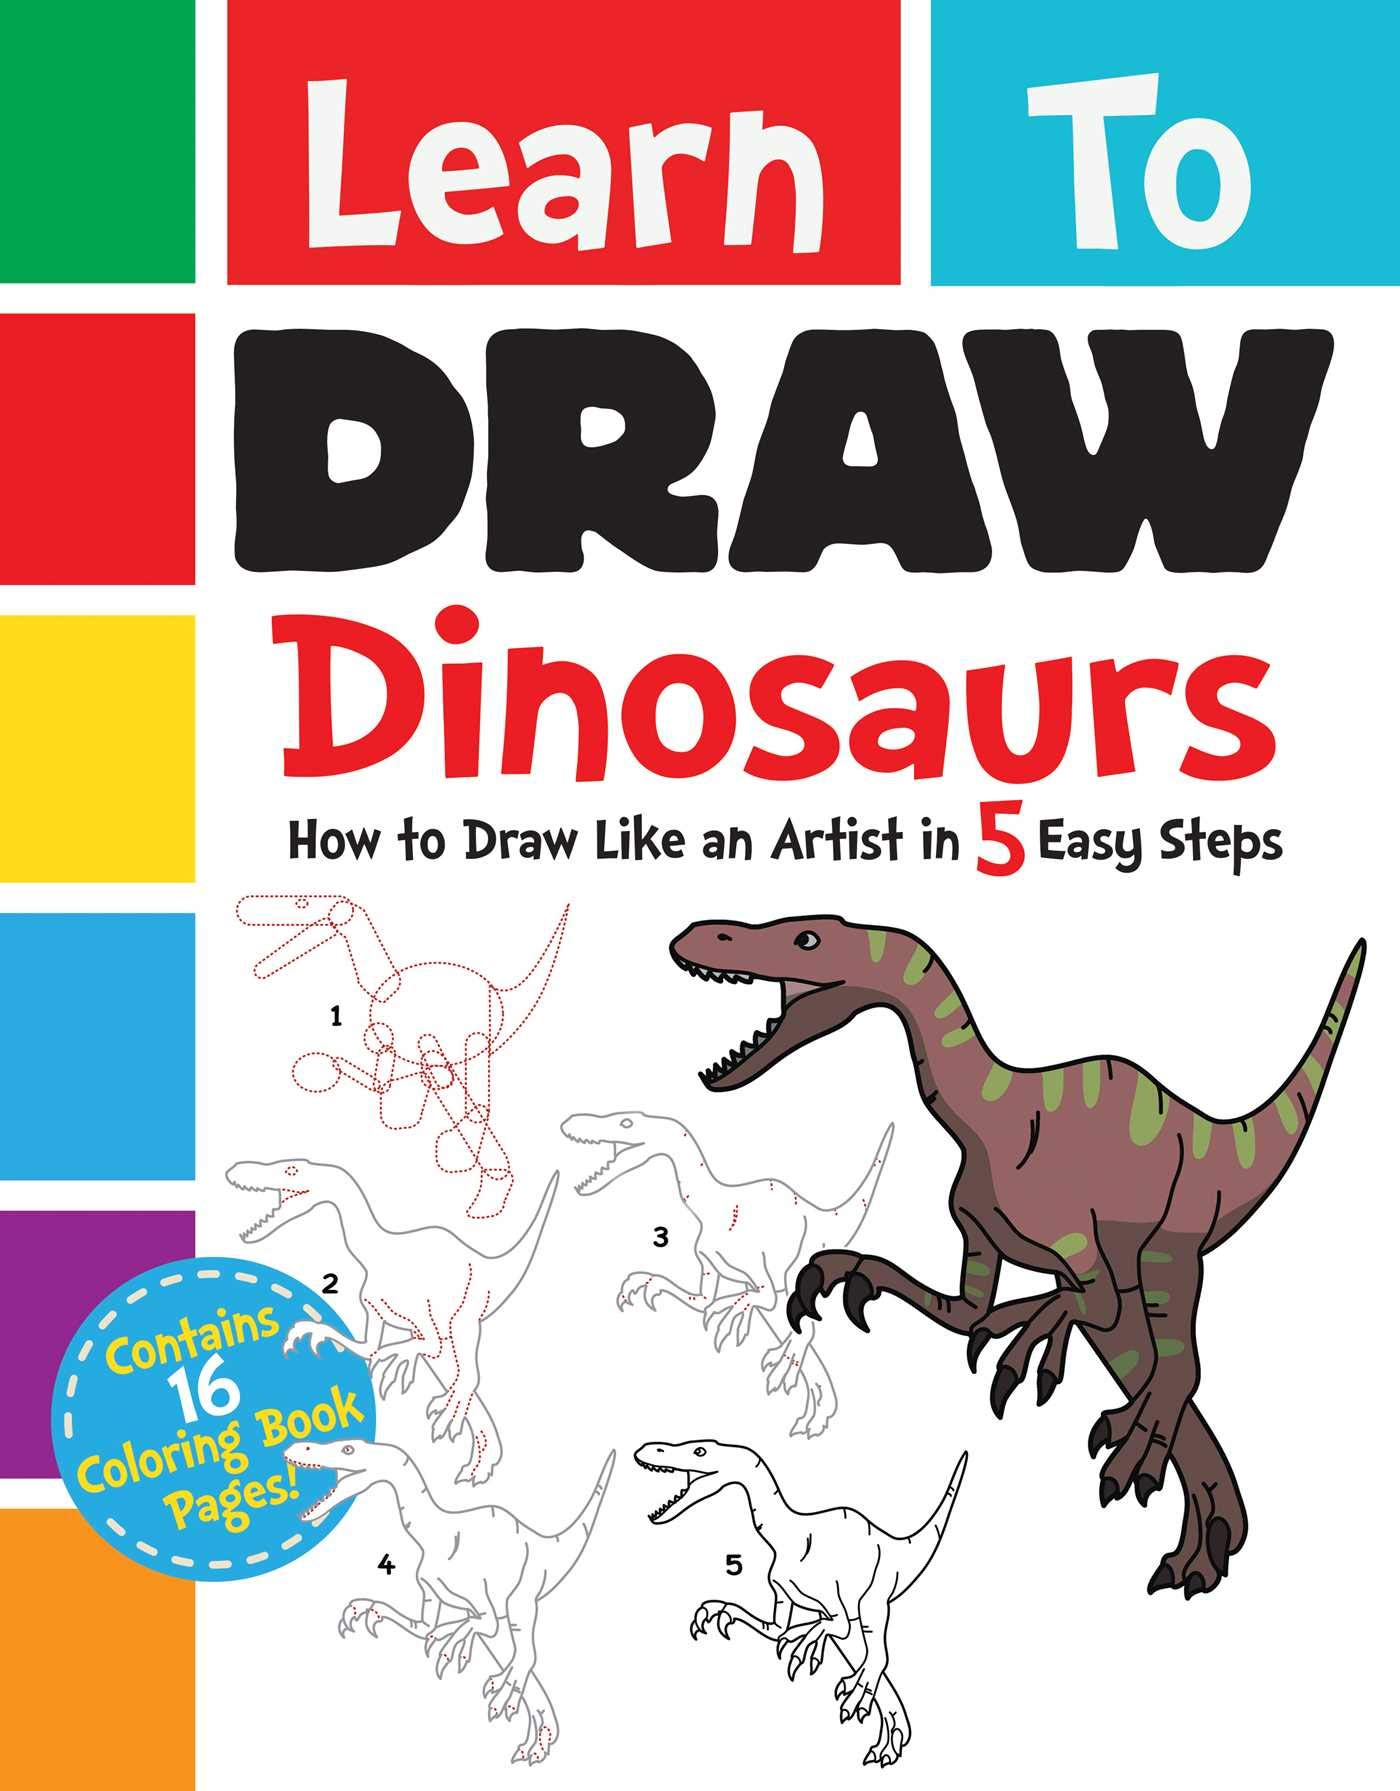 Learn to draw dinosaurs how to draw like an artist in 5 easy steps hardcover november 21 2017